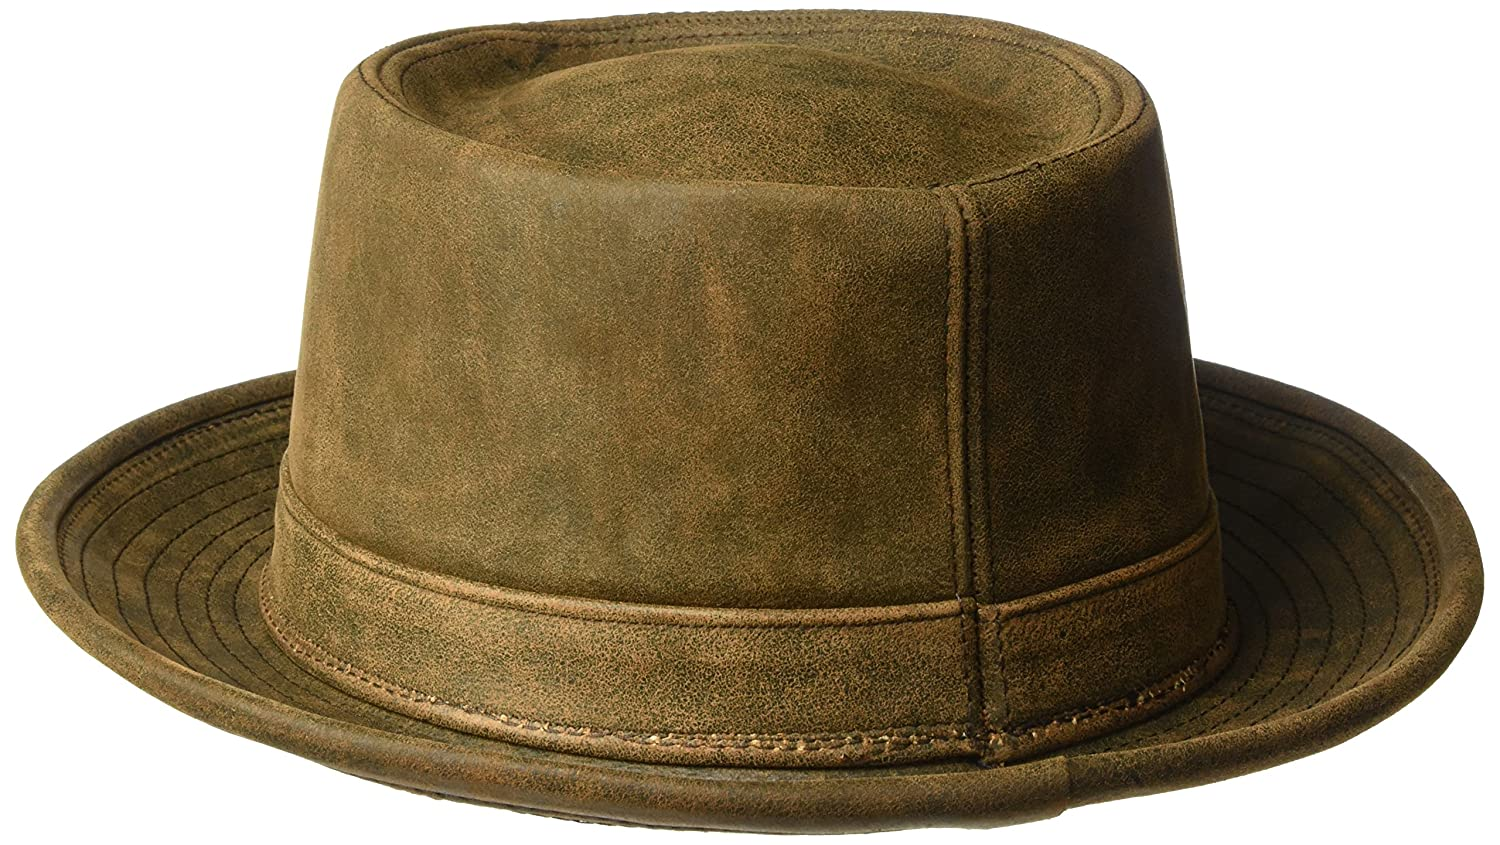 50ed774a1 Henschel Men's Smooth Garment Leather Porkpie Hat with Satin Lining ...